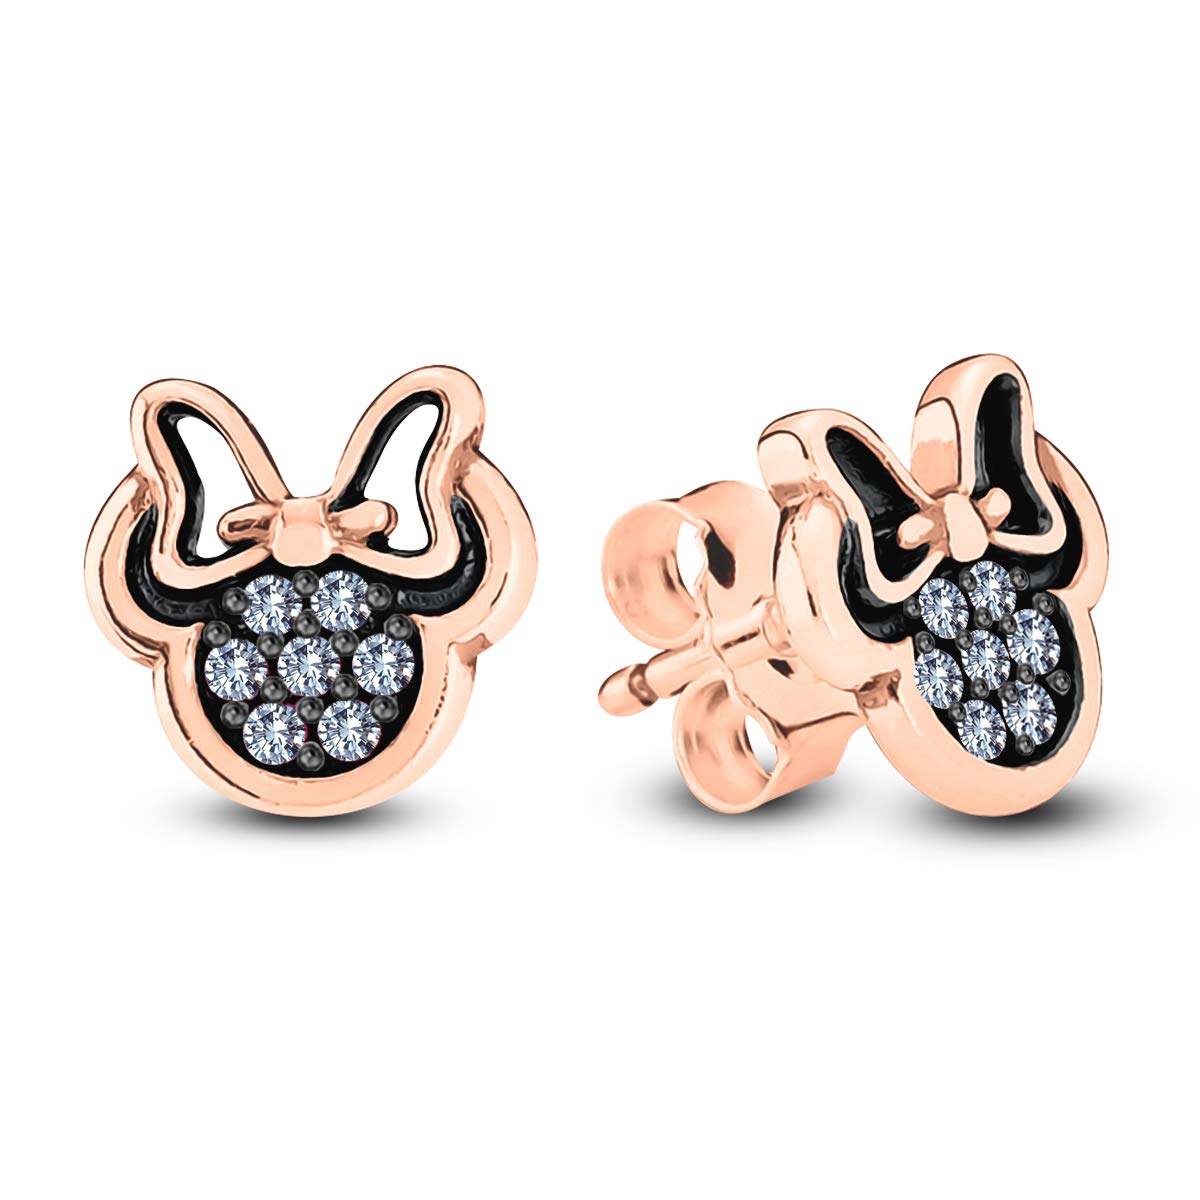 Gemstar Jewellery Round Cut Cubic Zirconia 18K Two Tone Gold Plated Minnie Mouse Push Back Earrings